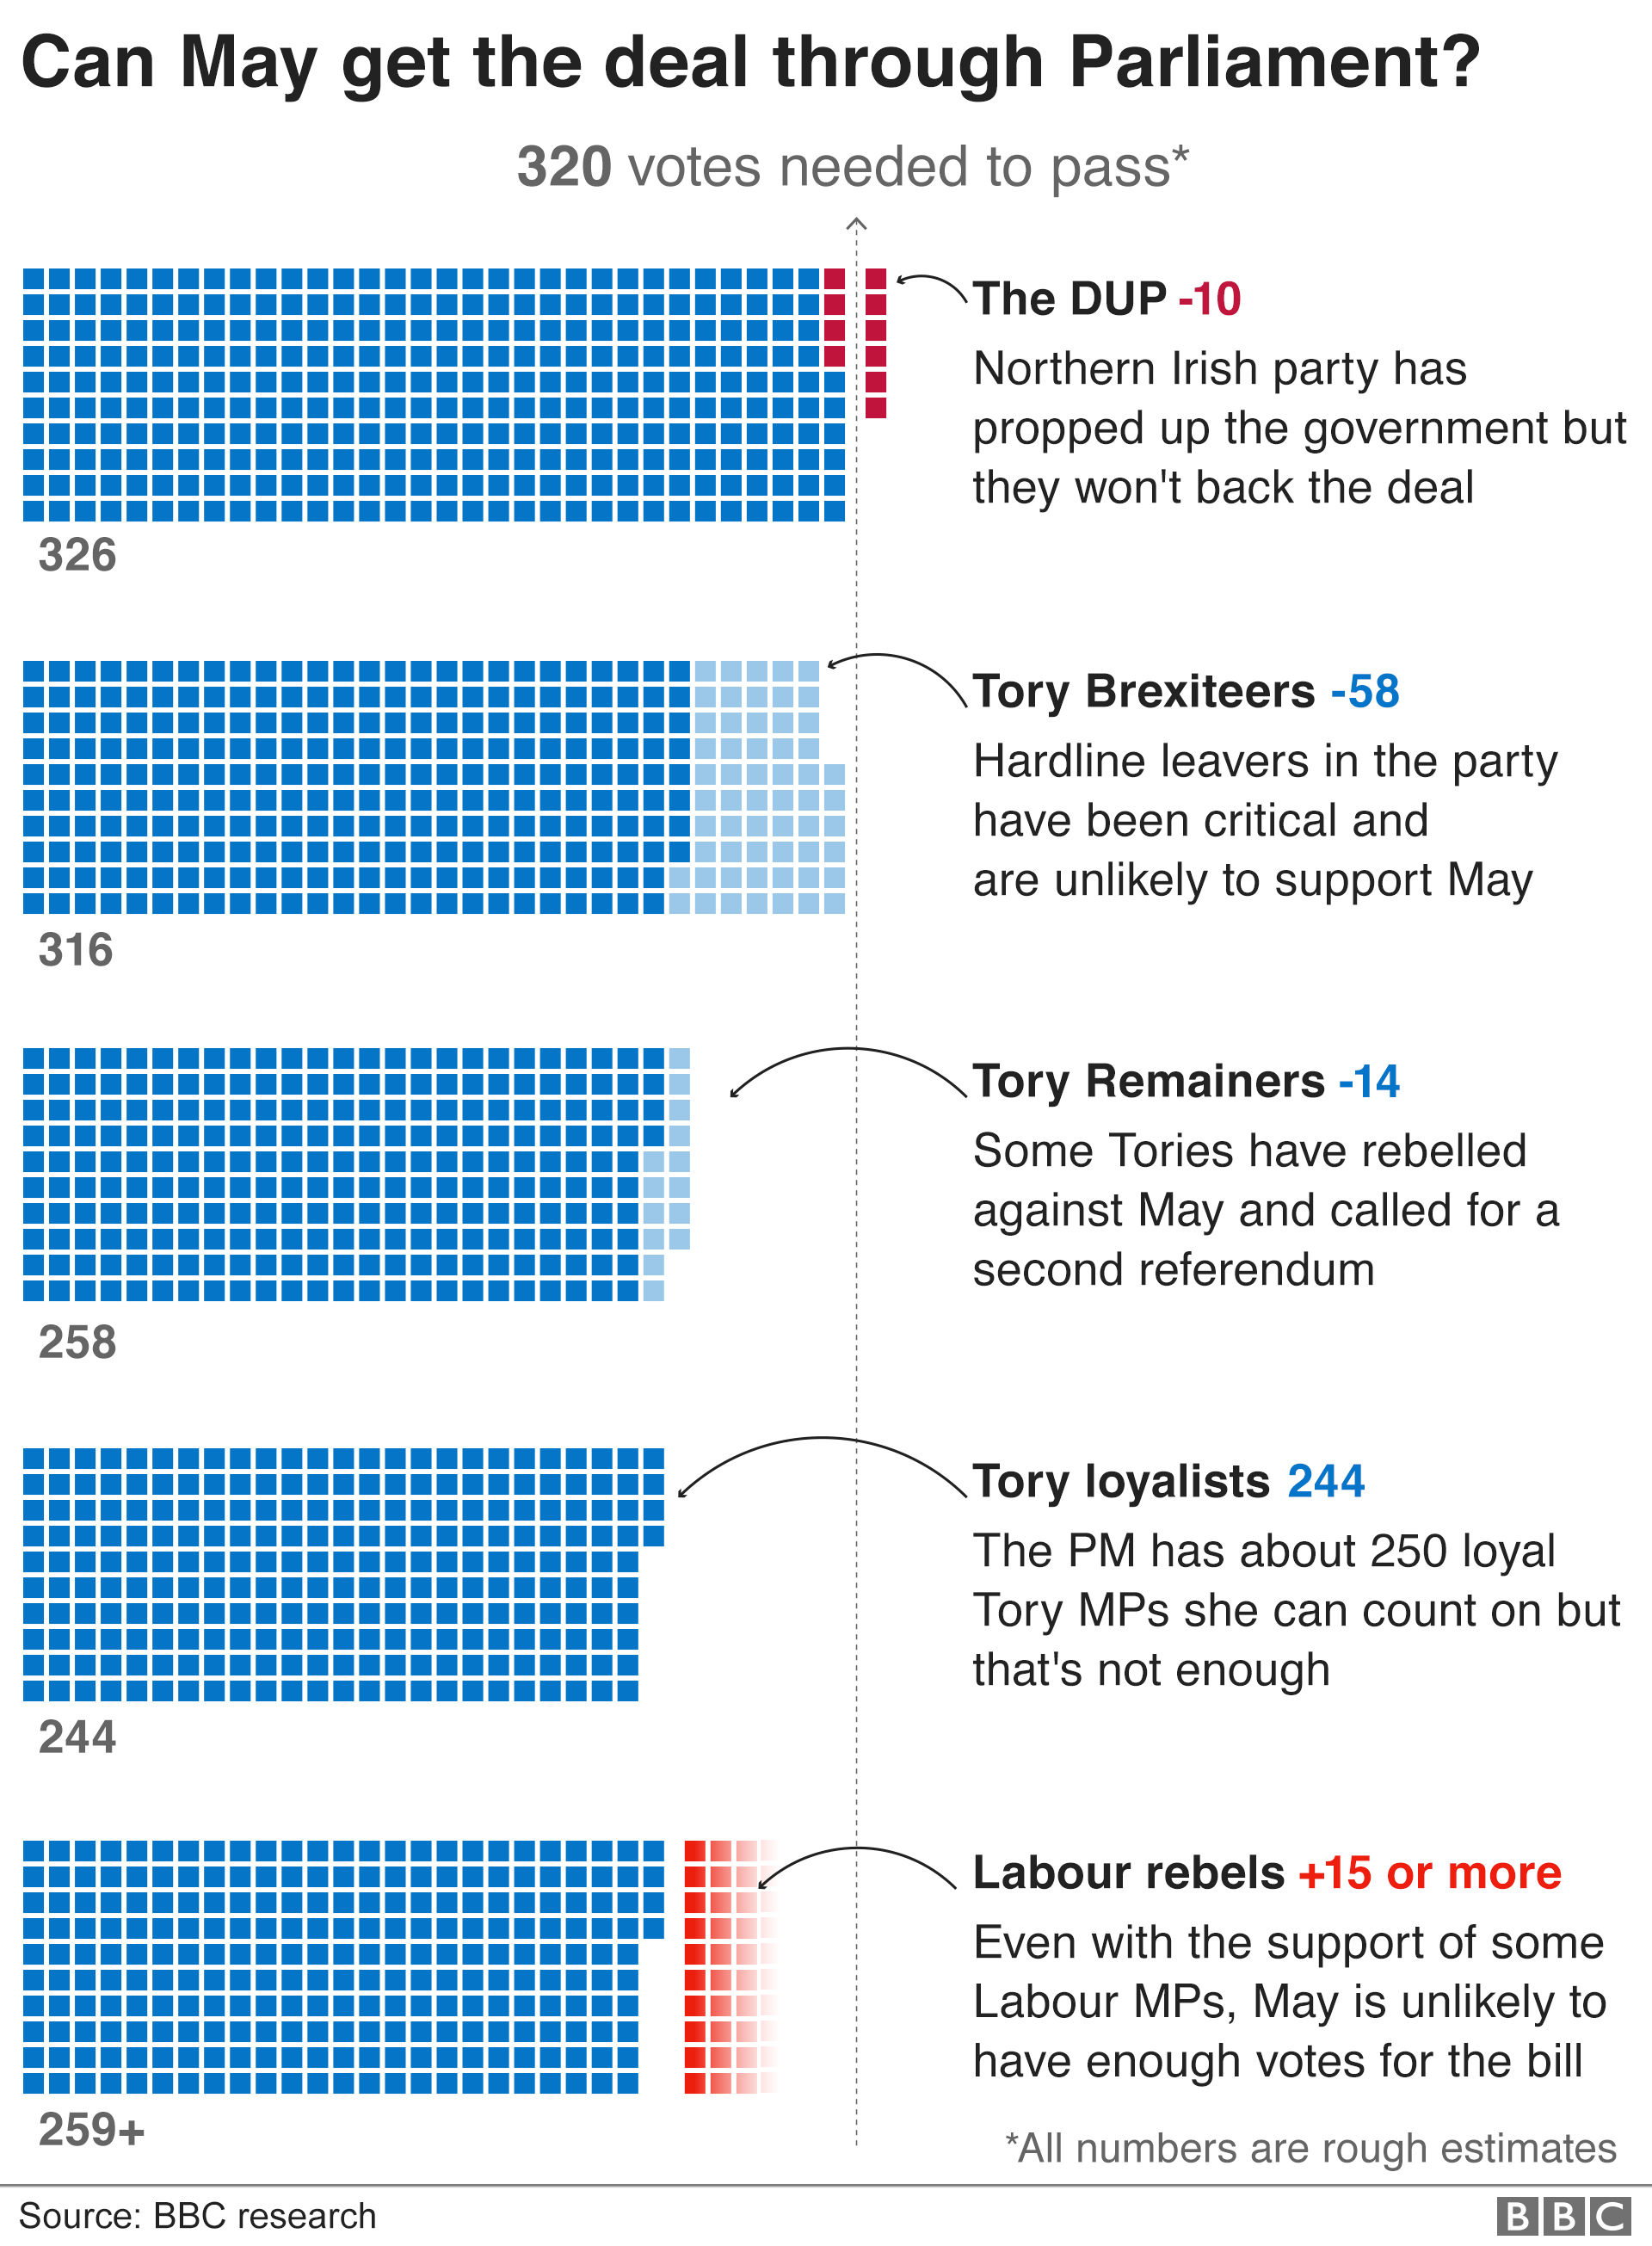 Infographic showing how the different Parliamentary groups may vote on the Brexit deal